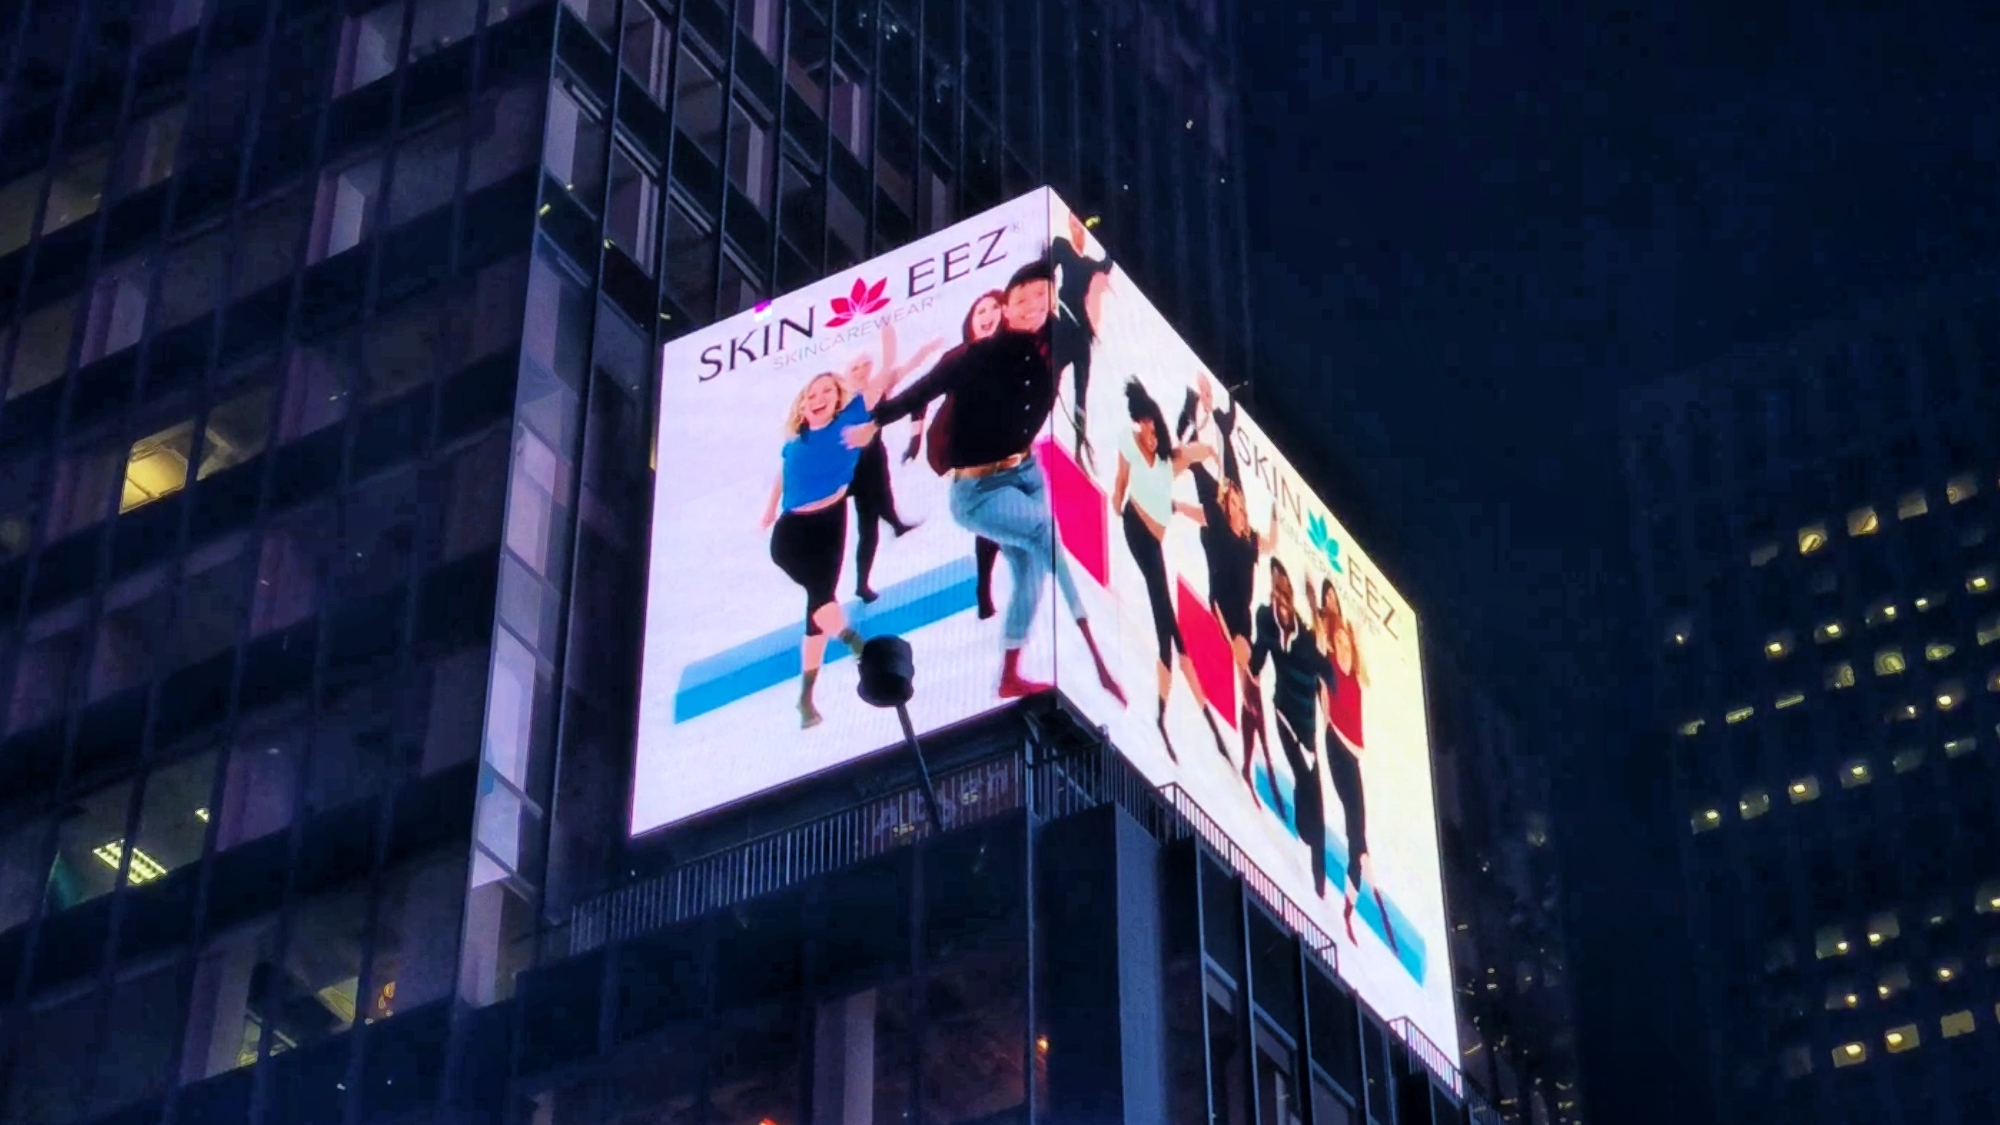 SKINEEZ - TIMES SQUARE - Capturing attention in the busiest intersection in the world